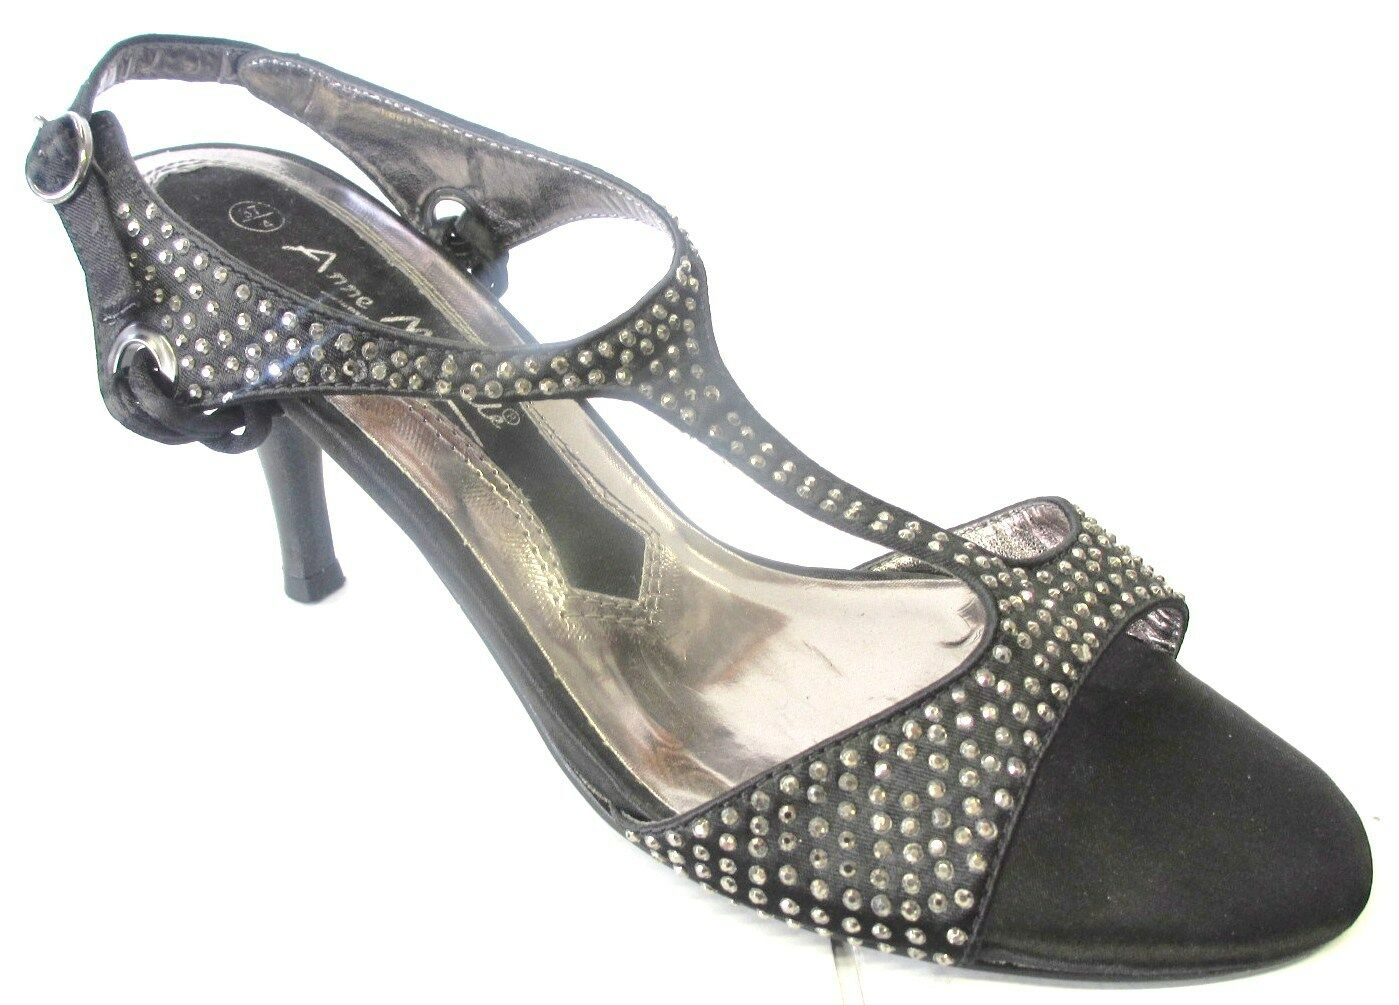 LADIES ANNE WITH MICHELLE MID HEEL SANDAL WITH ANNE DIAMANTE DETAIL L3303 BLACK MAN MADE 548509